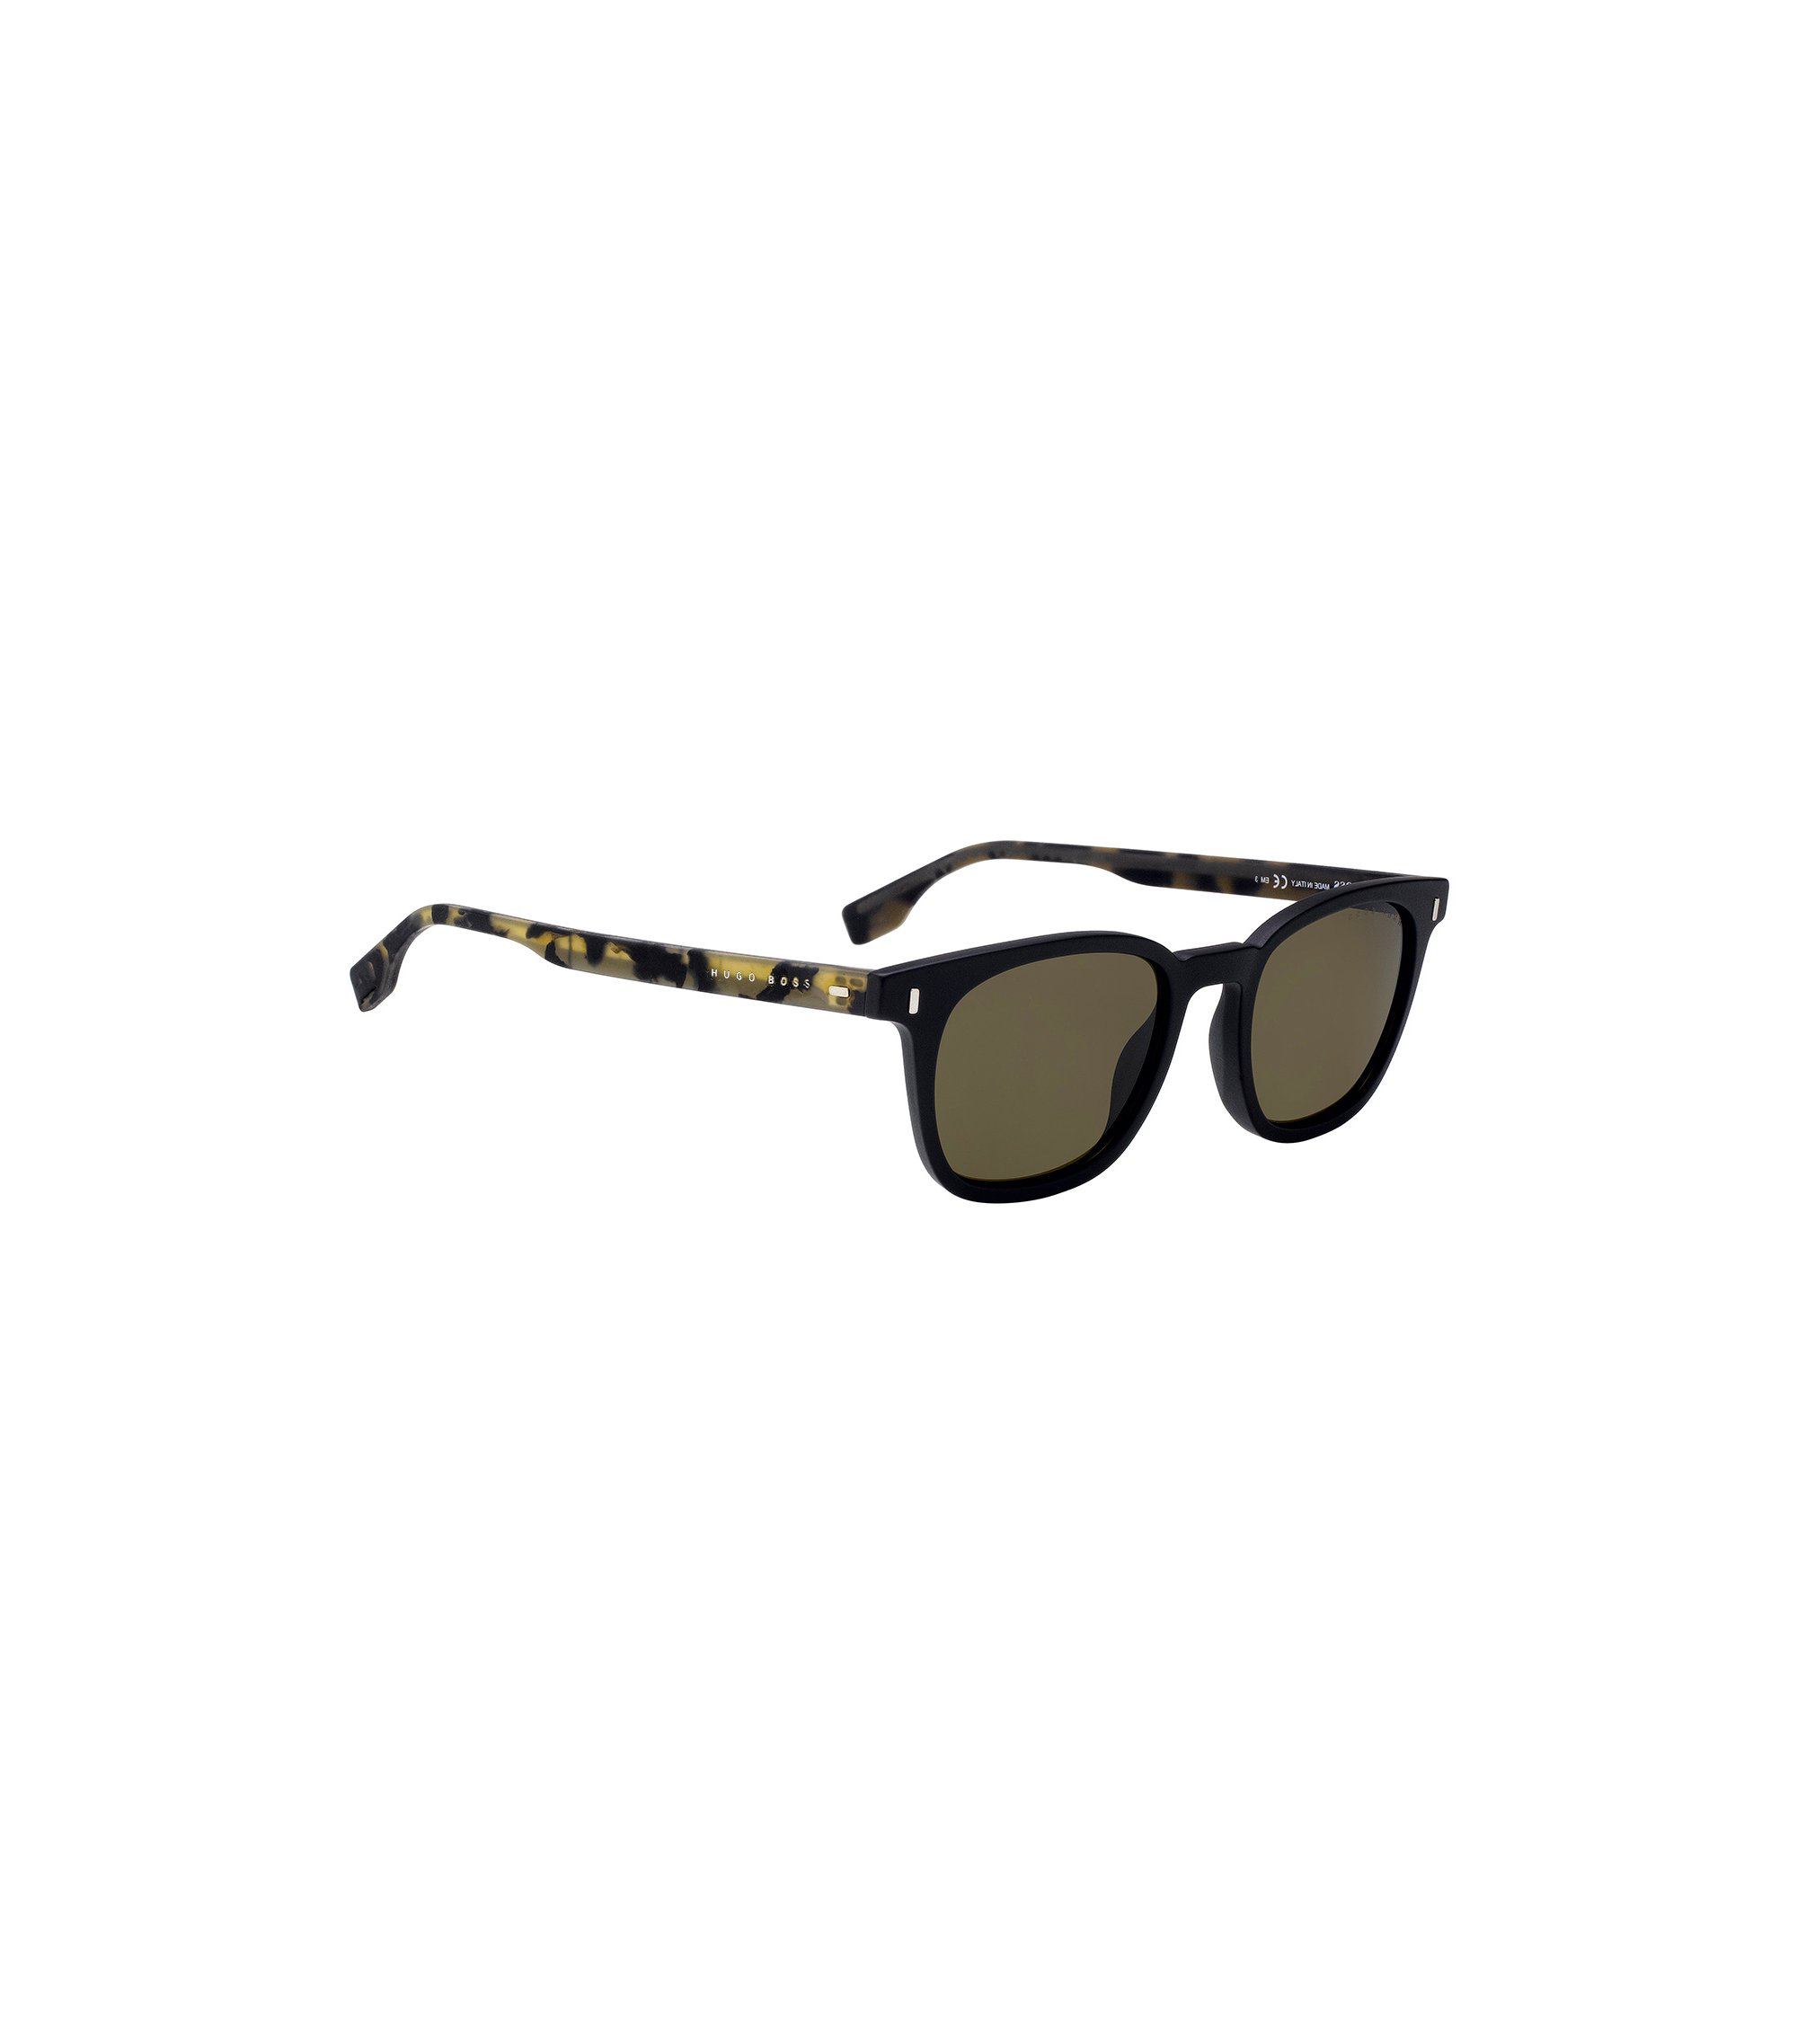 Sunglasses with rubber Havana temples, Assorted-Pre-Pack